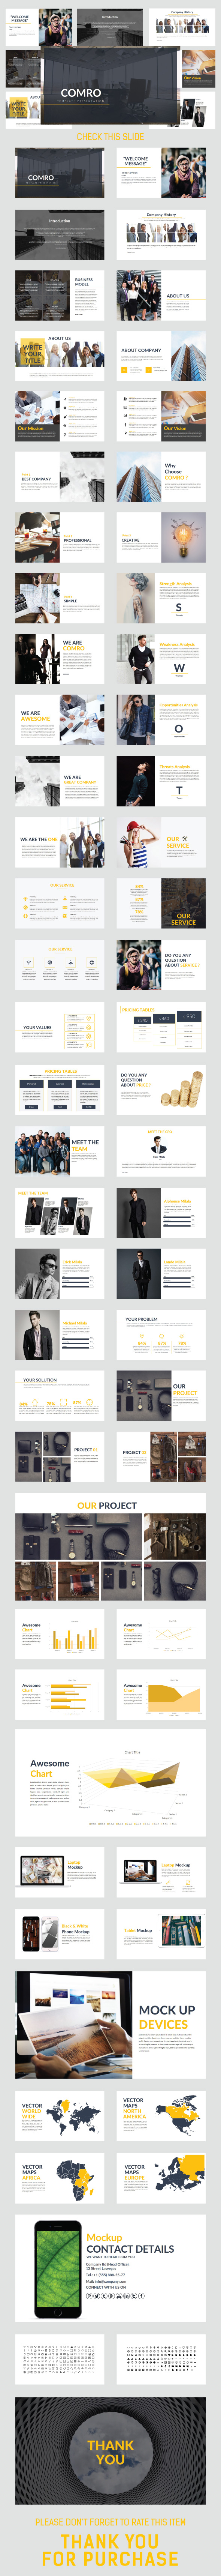 COMRO Multipurpose Template - Business PowerPoint Templates